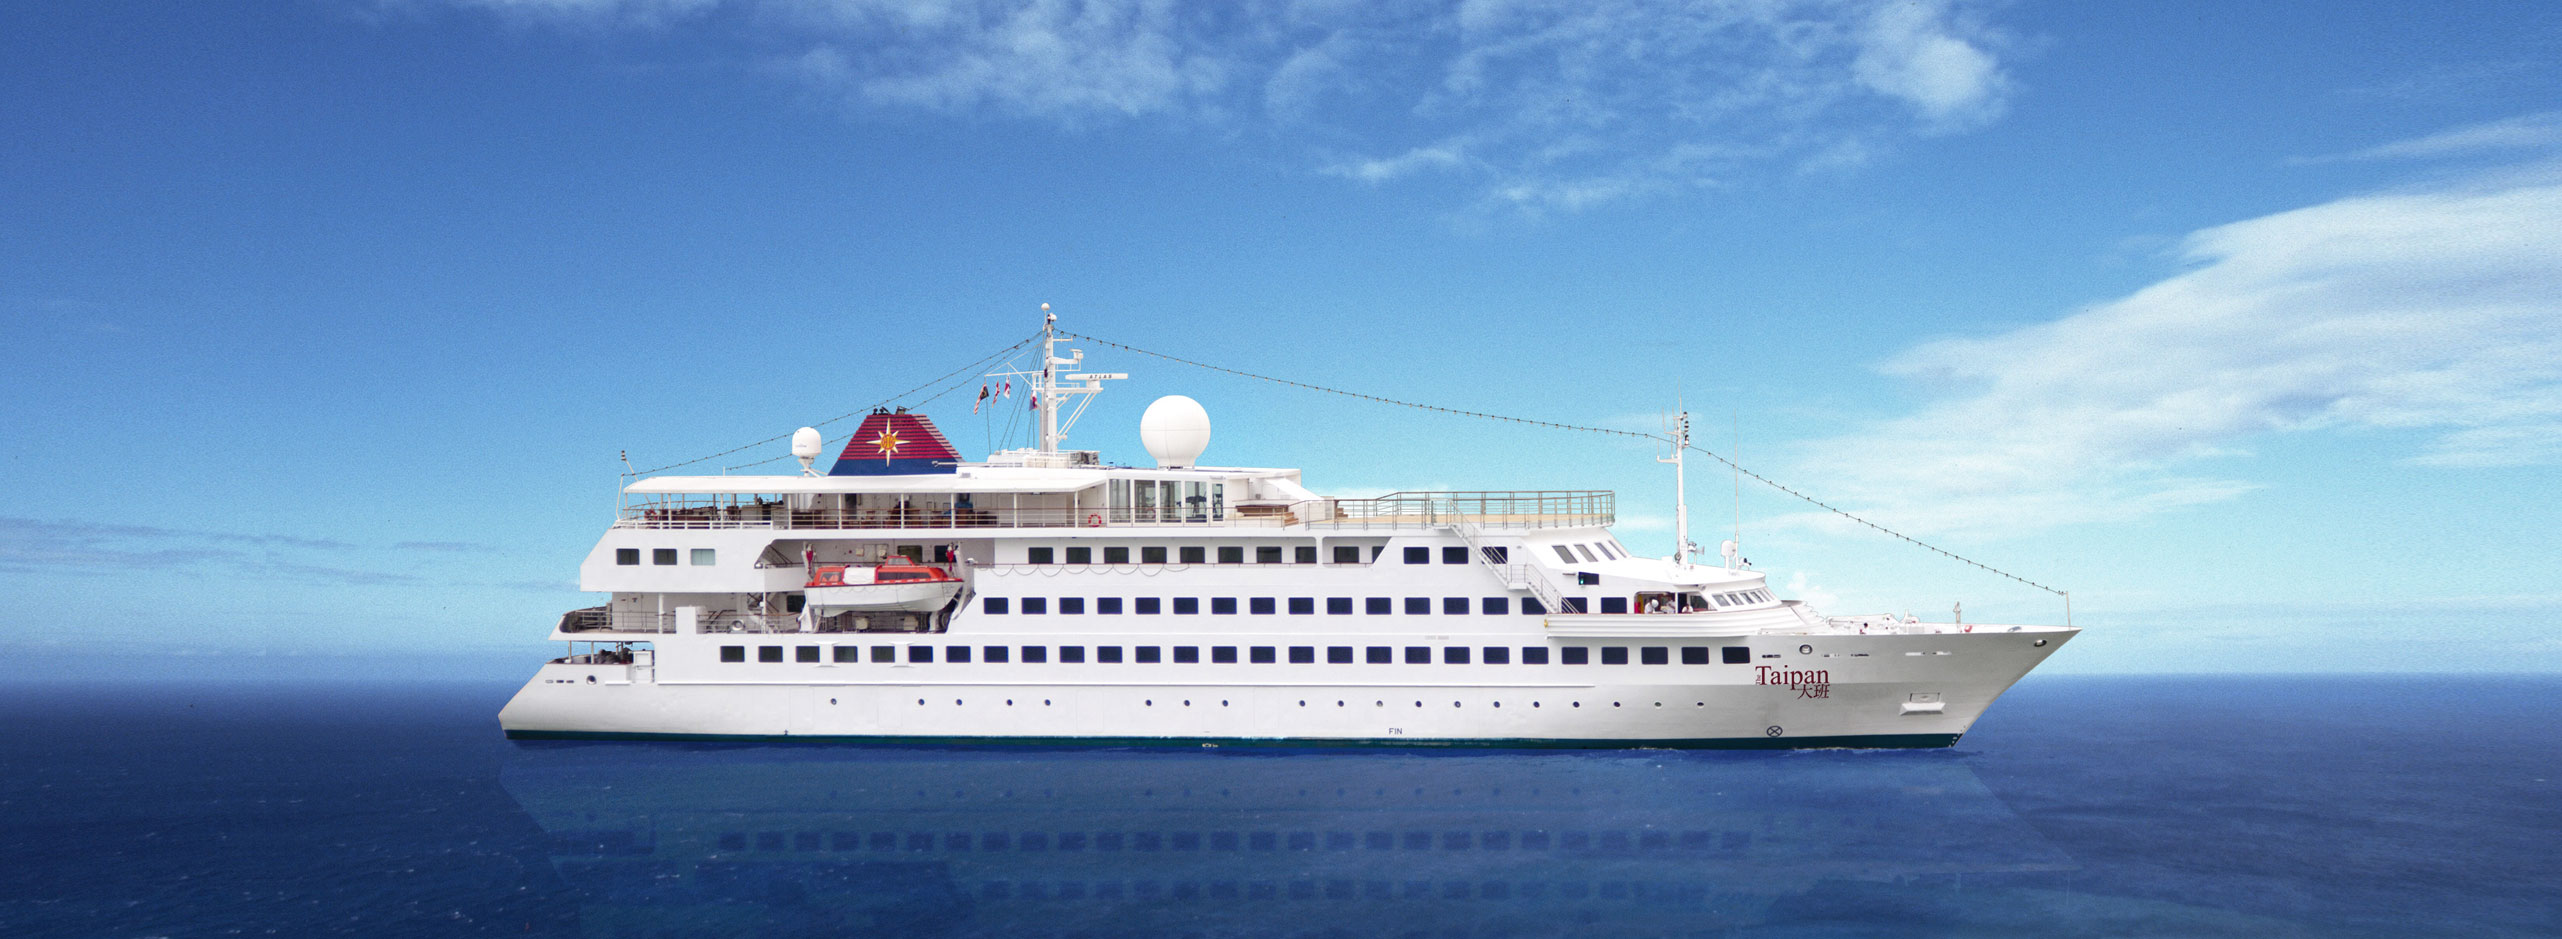 Family Cruise Vacations  Asian Cruise  The Taipan  Star Cruises